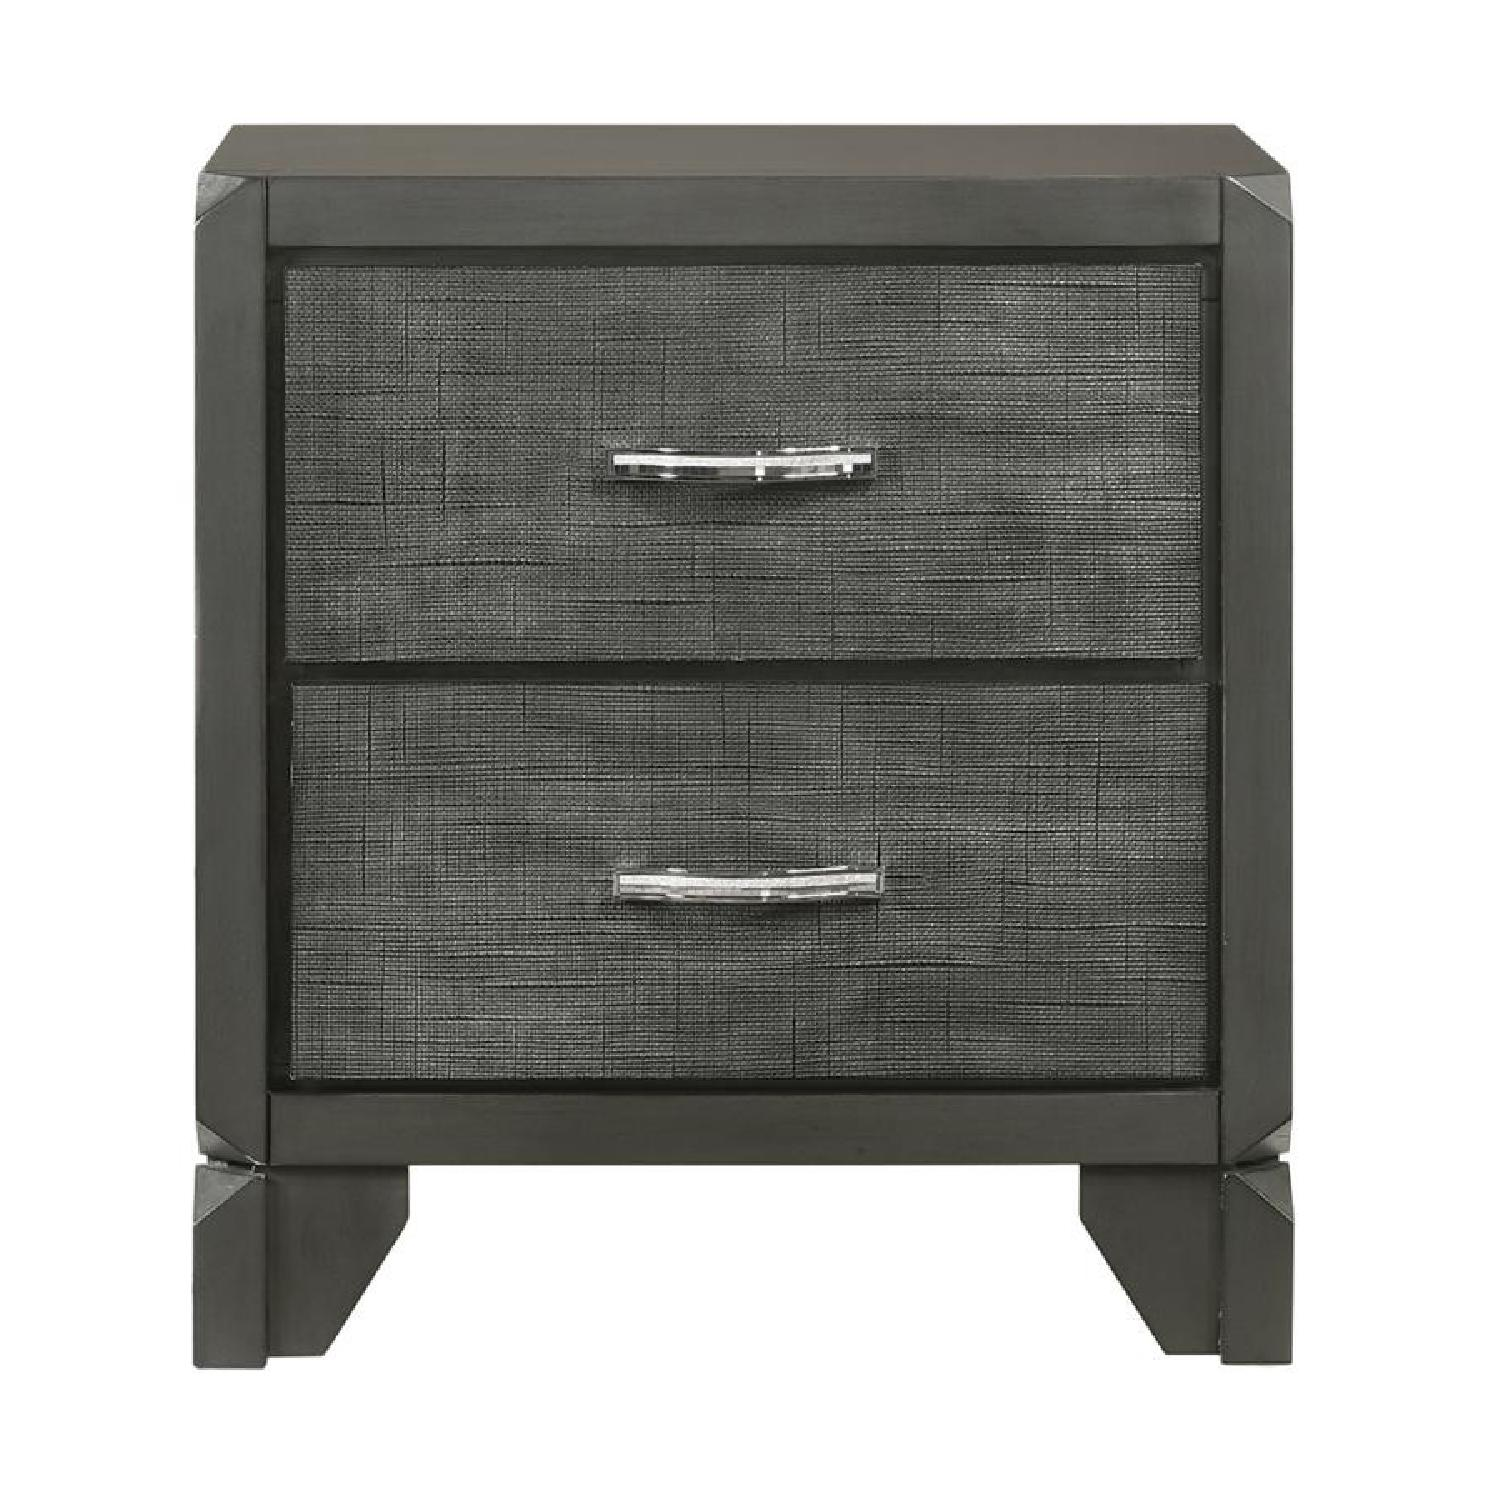 2-Drawer Nightstand in Caviar Finish w/ Woven Texture Front - image-2